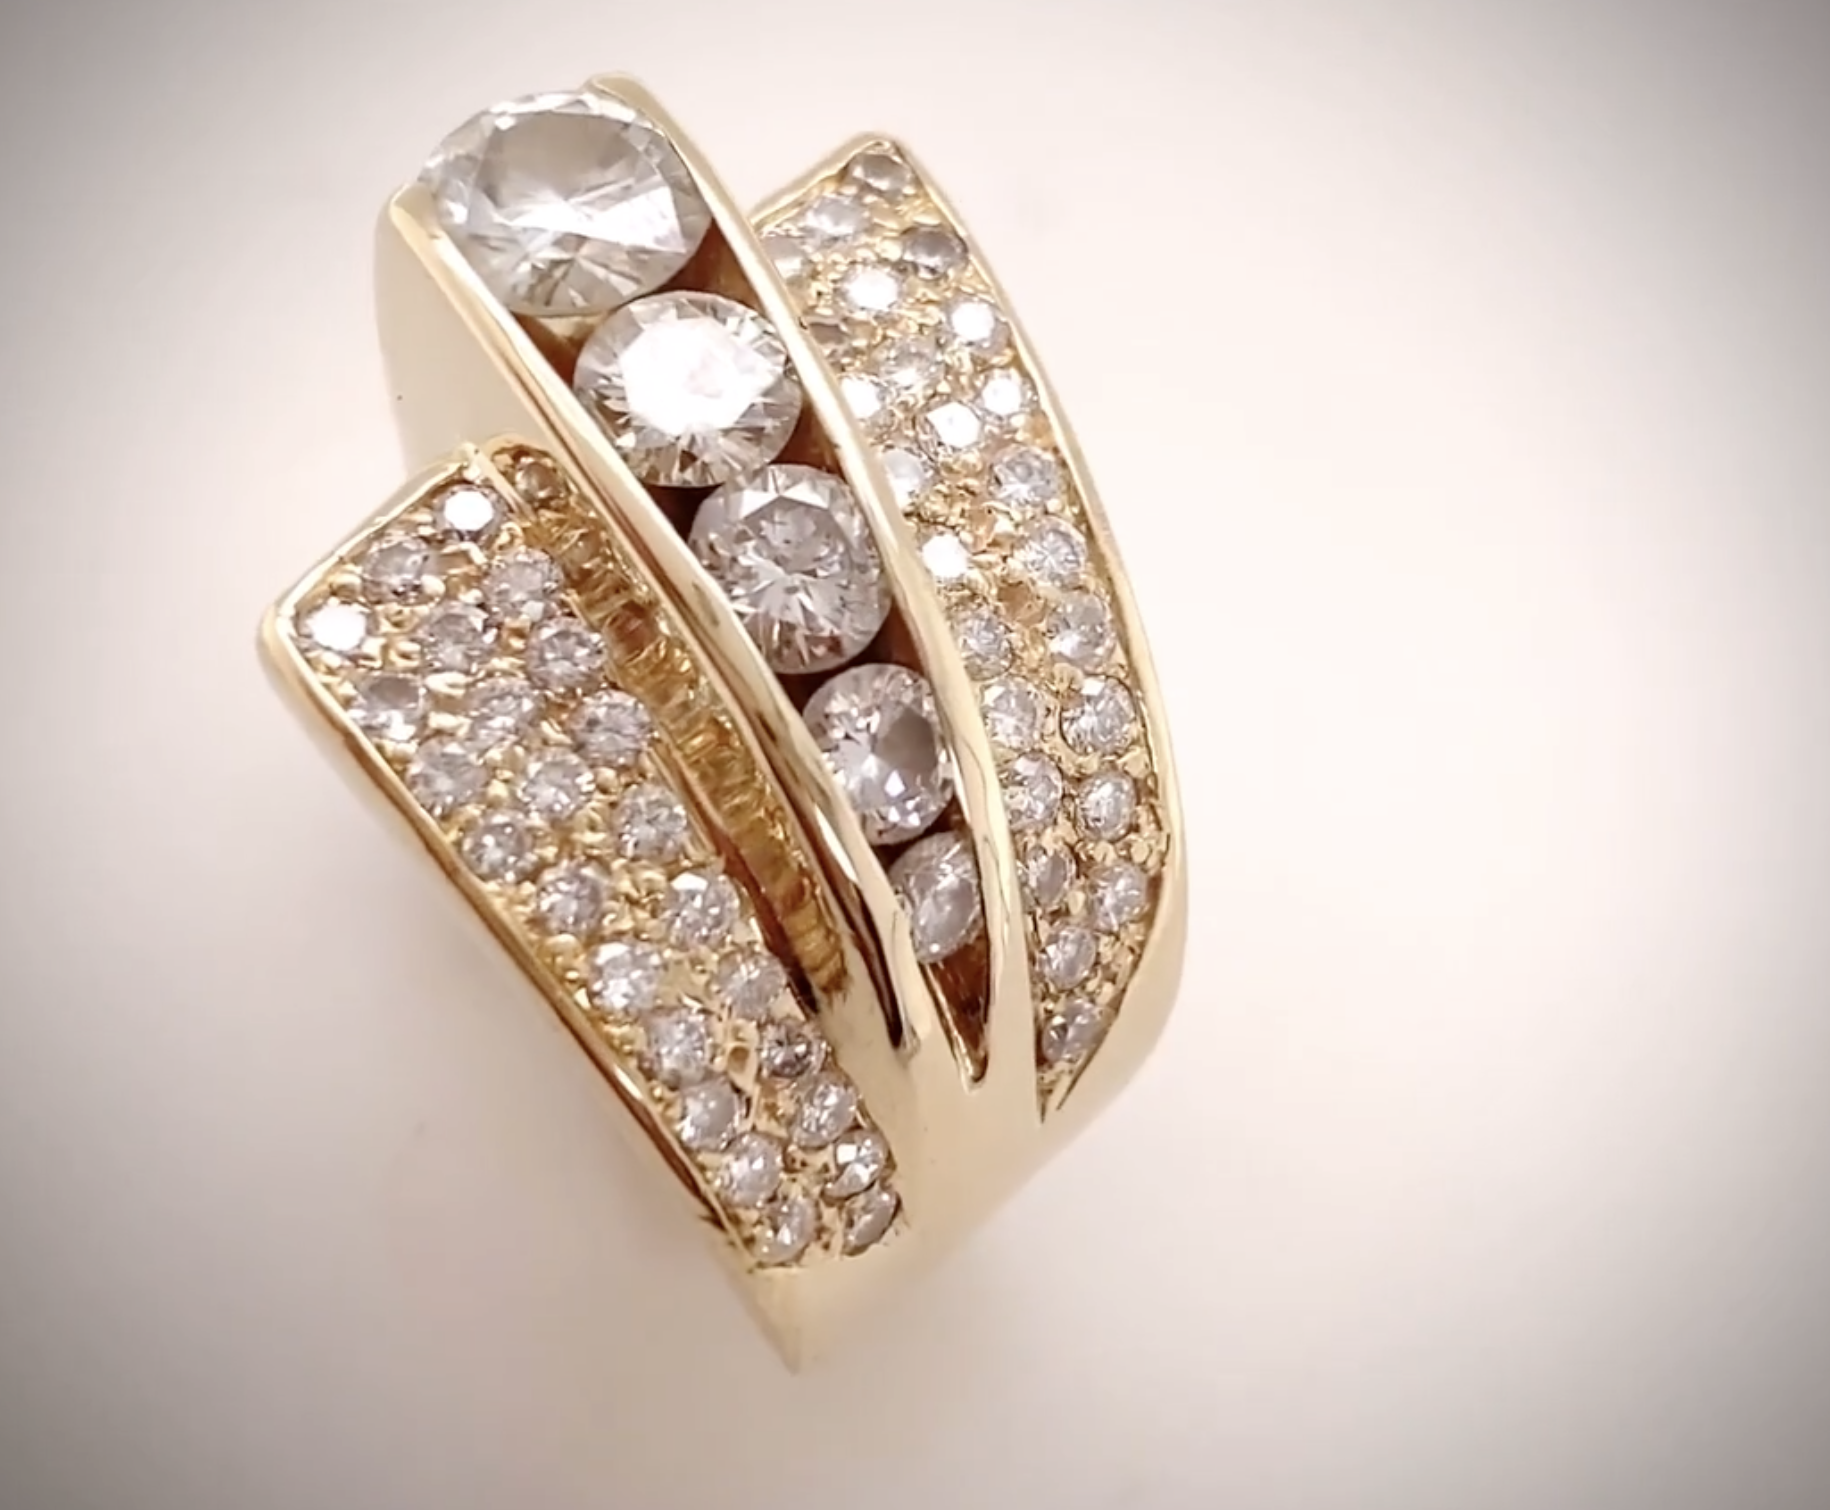 Our client's diamonds were set in 14K yellow gold in a custom-designed dramatic wedge.